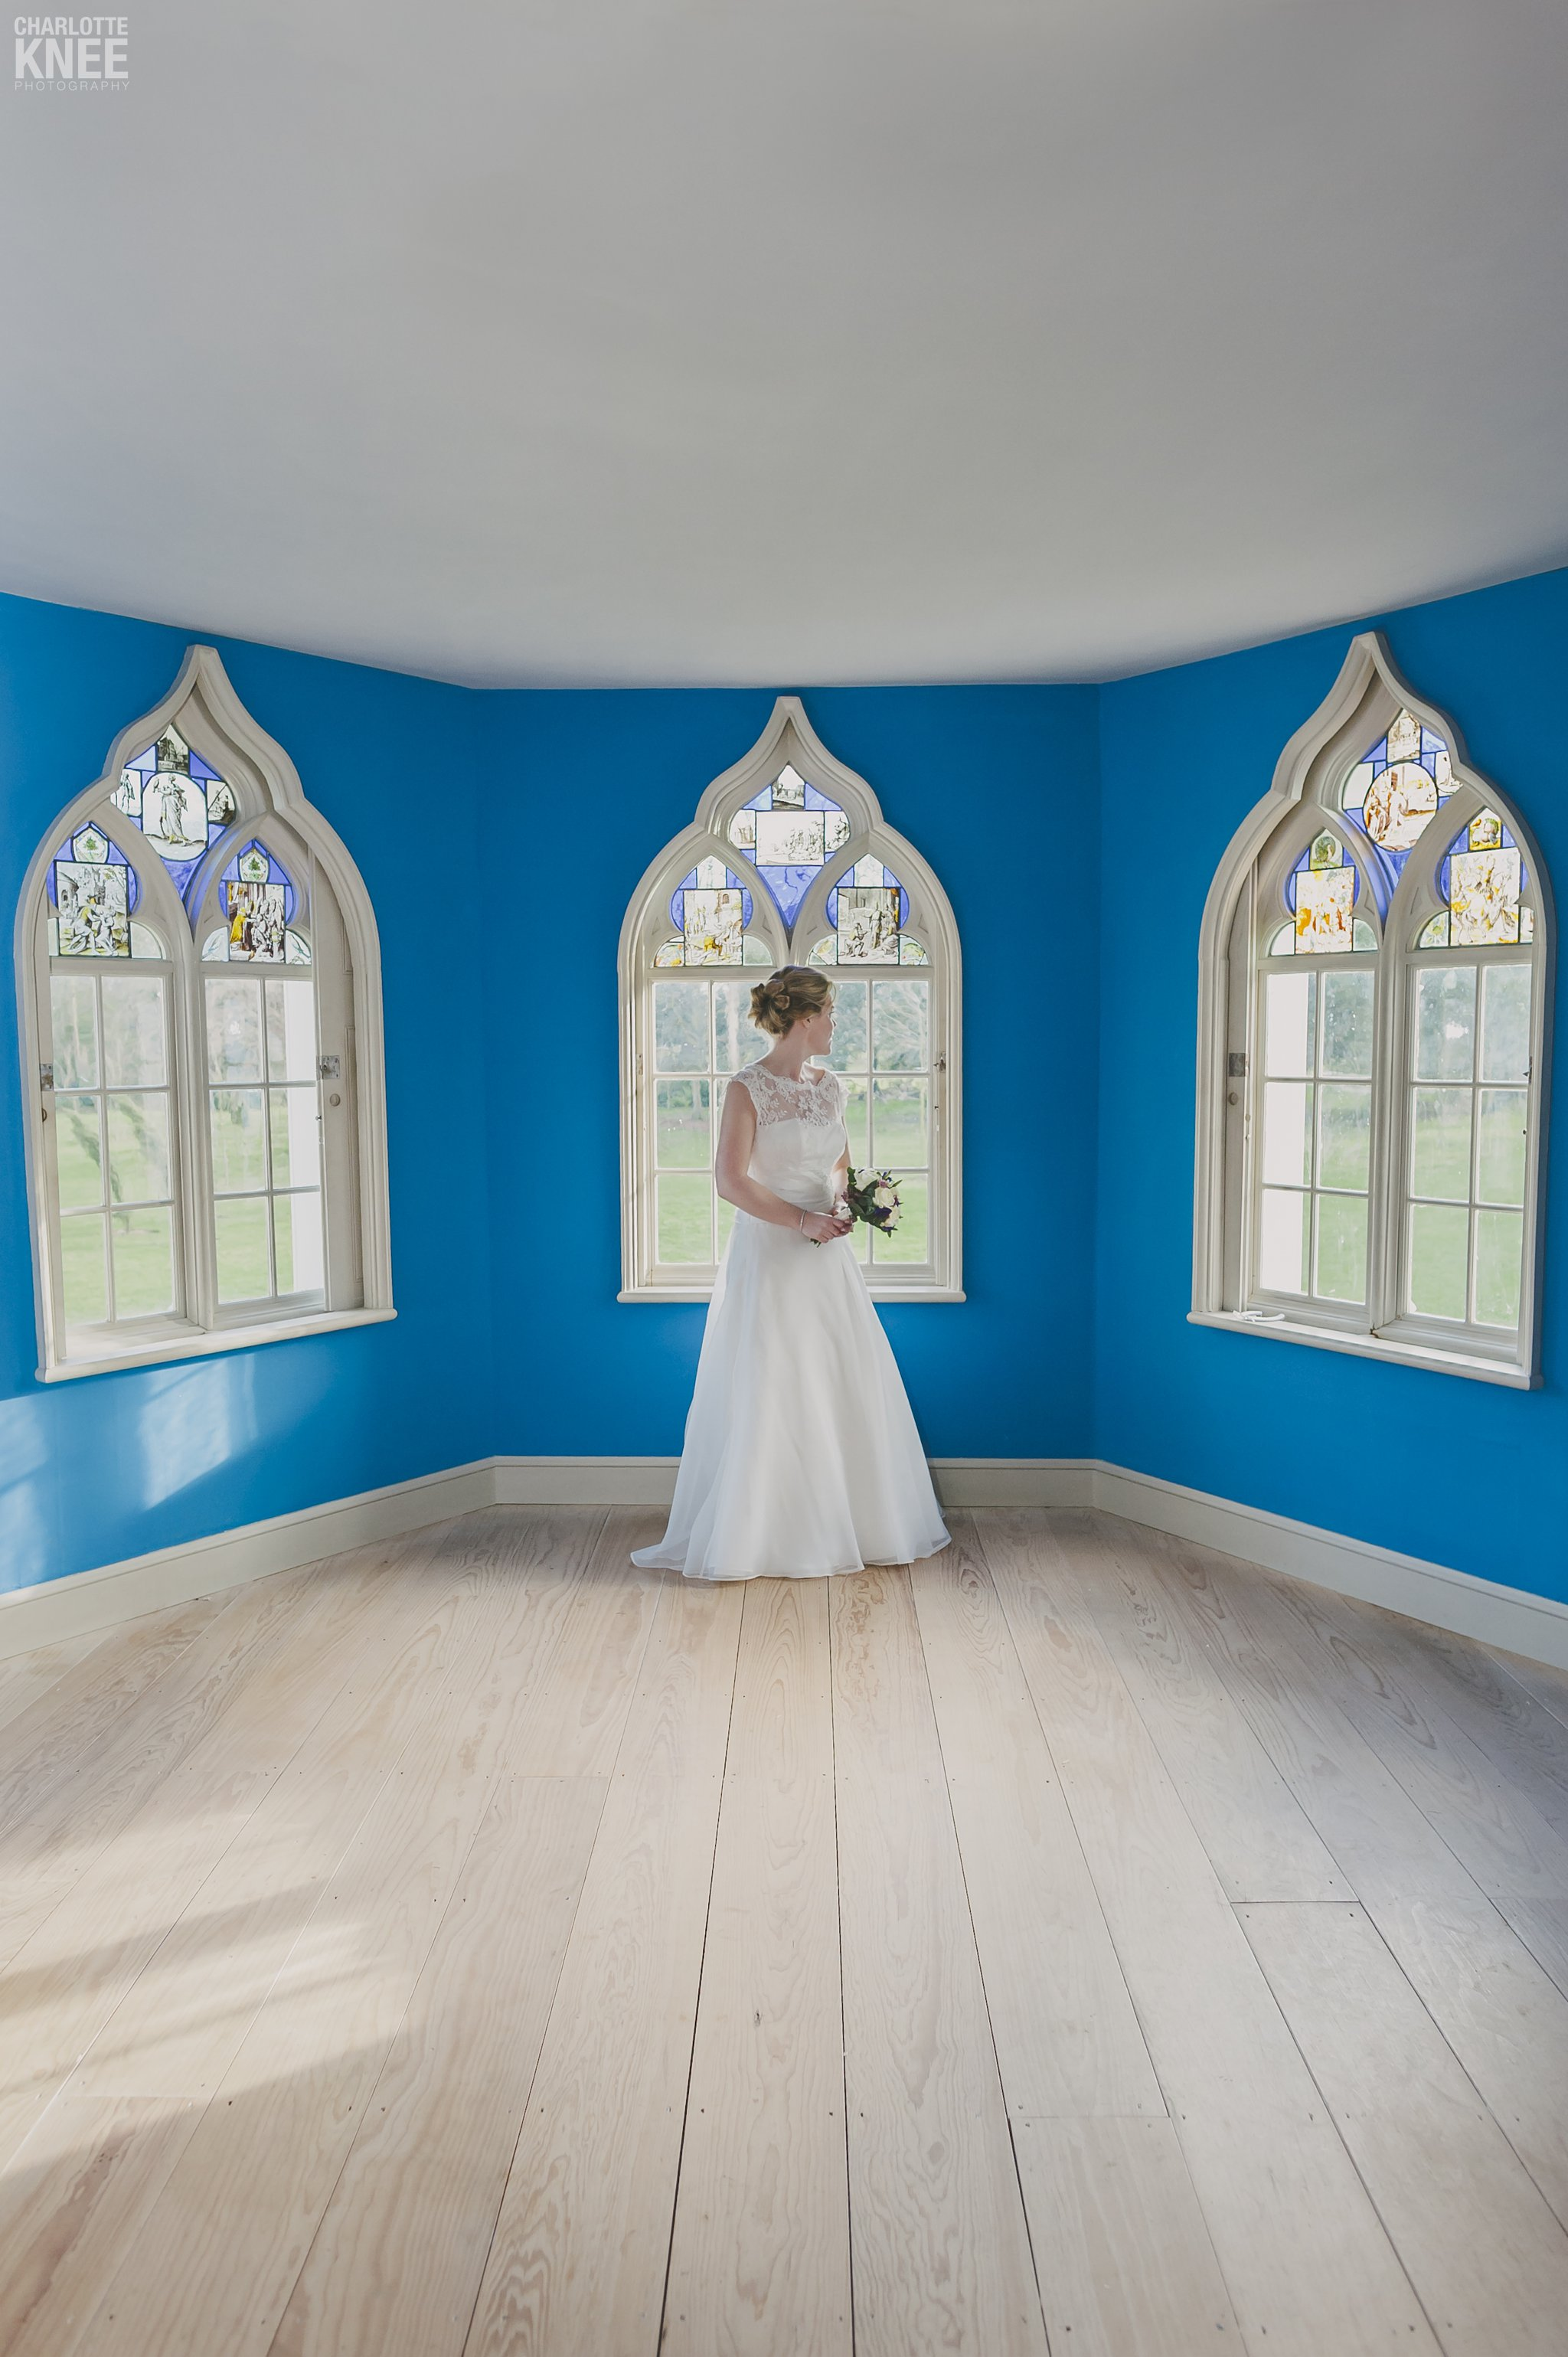 LONDON-WEDDING-PHOTOGRAPHY-STRAWBERRY-HILL-HOUSE-Charlotte-Knee-Photography_0066.jpg